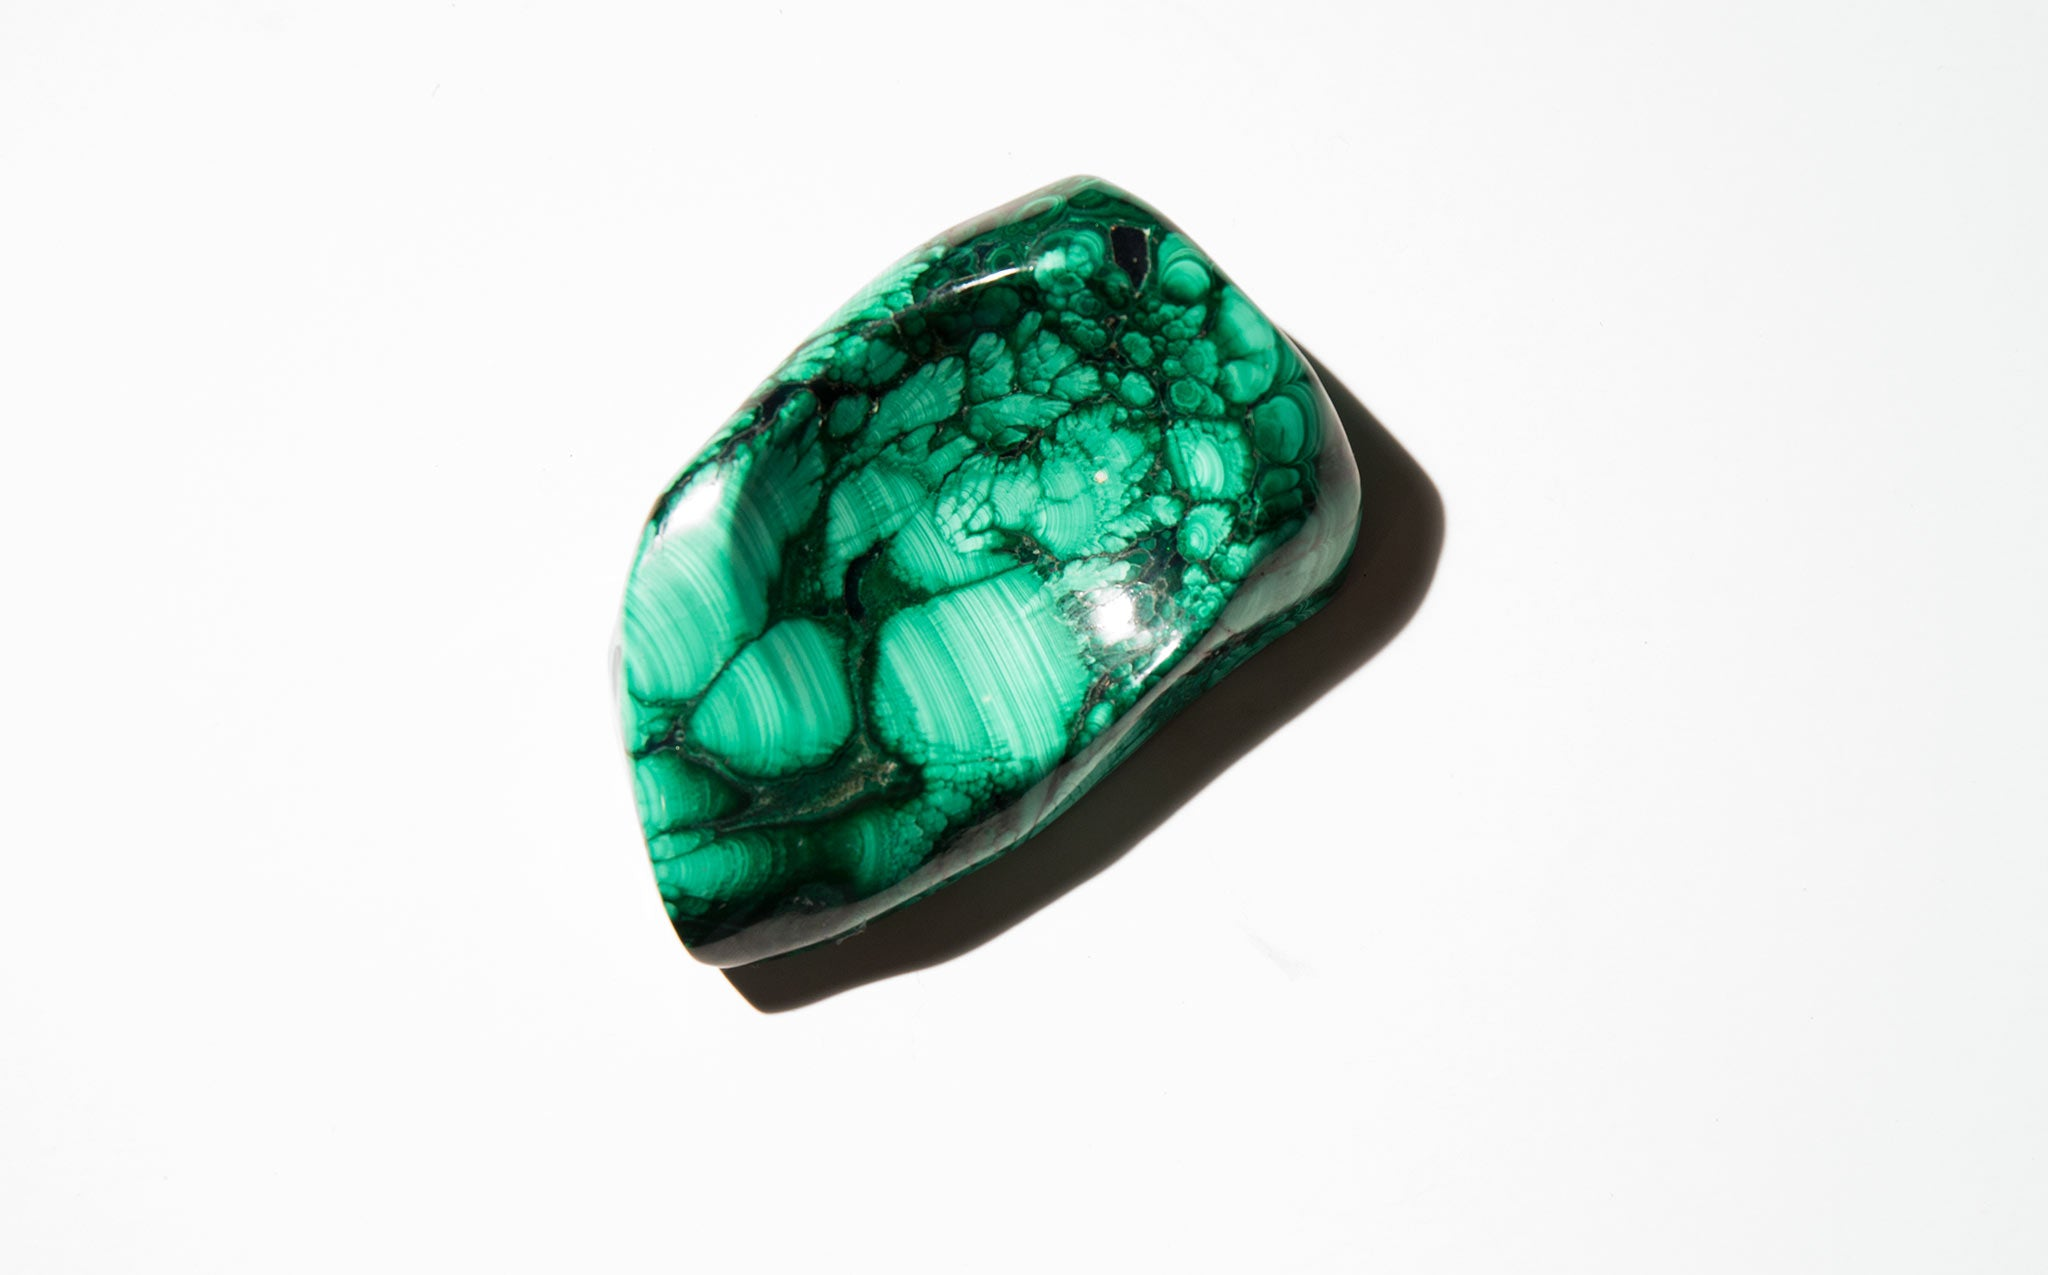 Polished Malachite Jewelry Dish